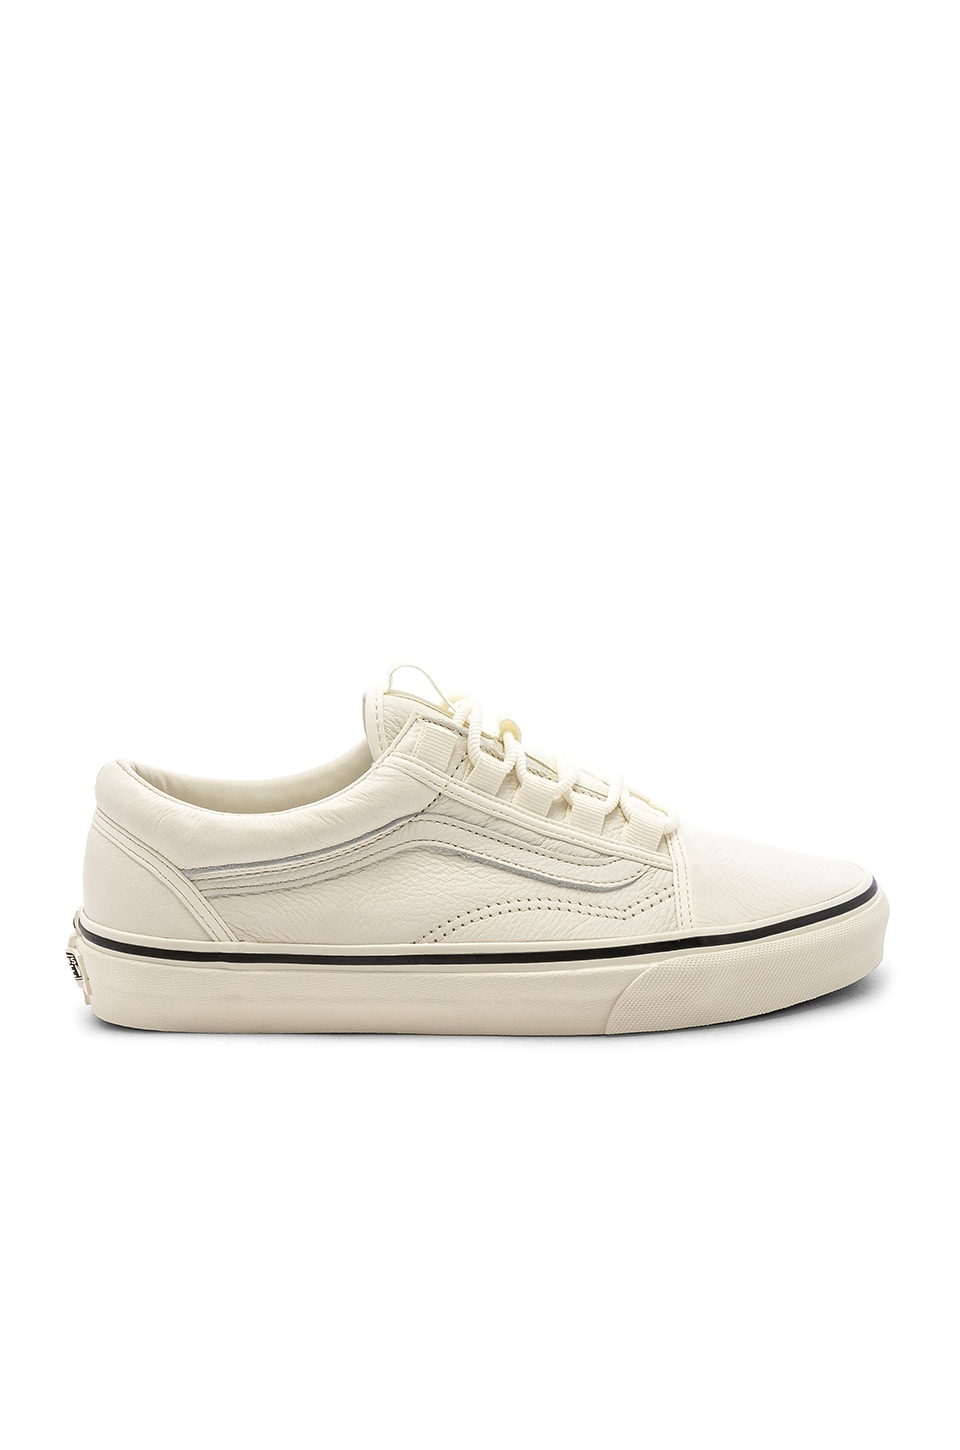 Vans Old Skool Ghillie in Marshmallow